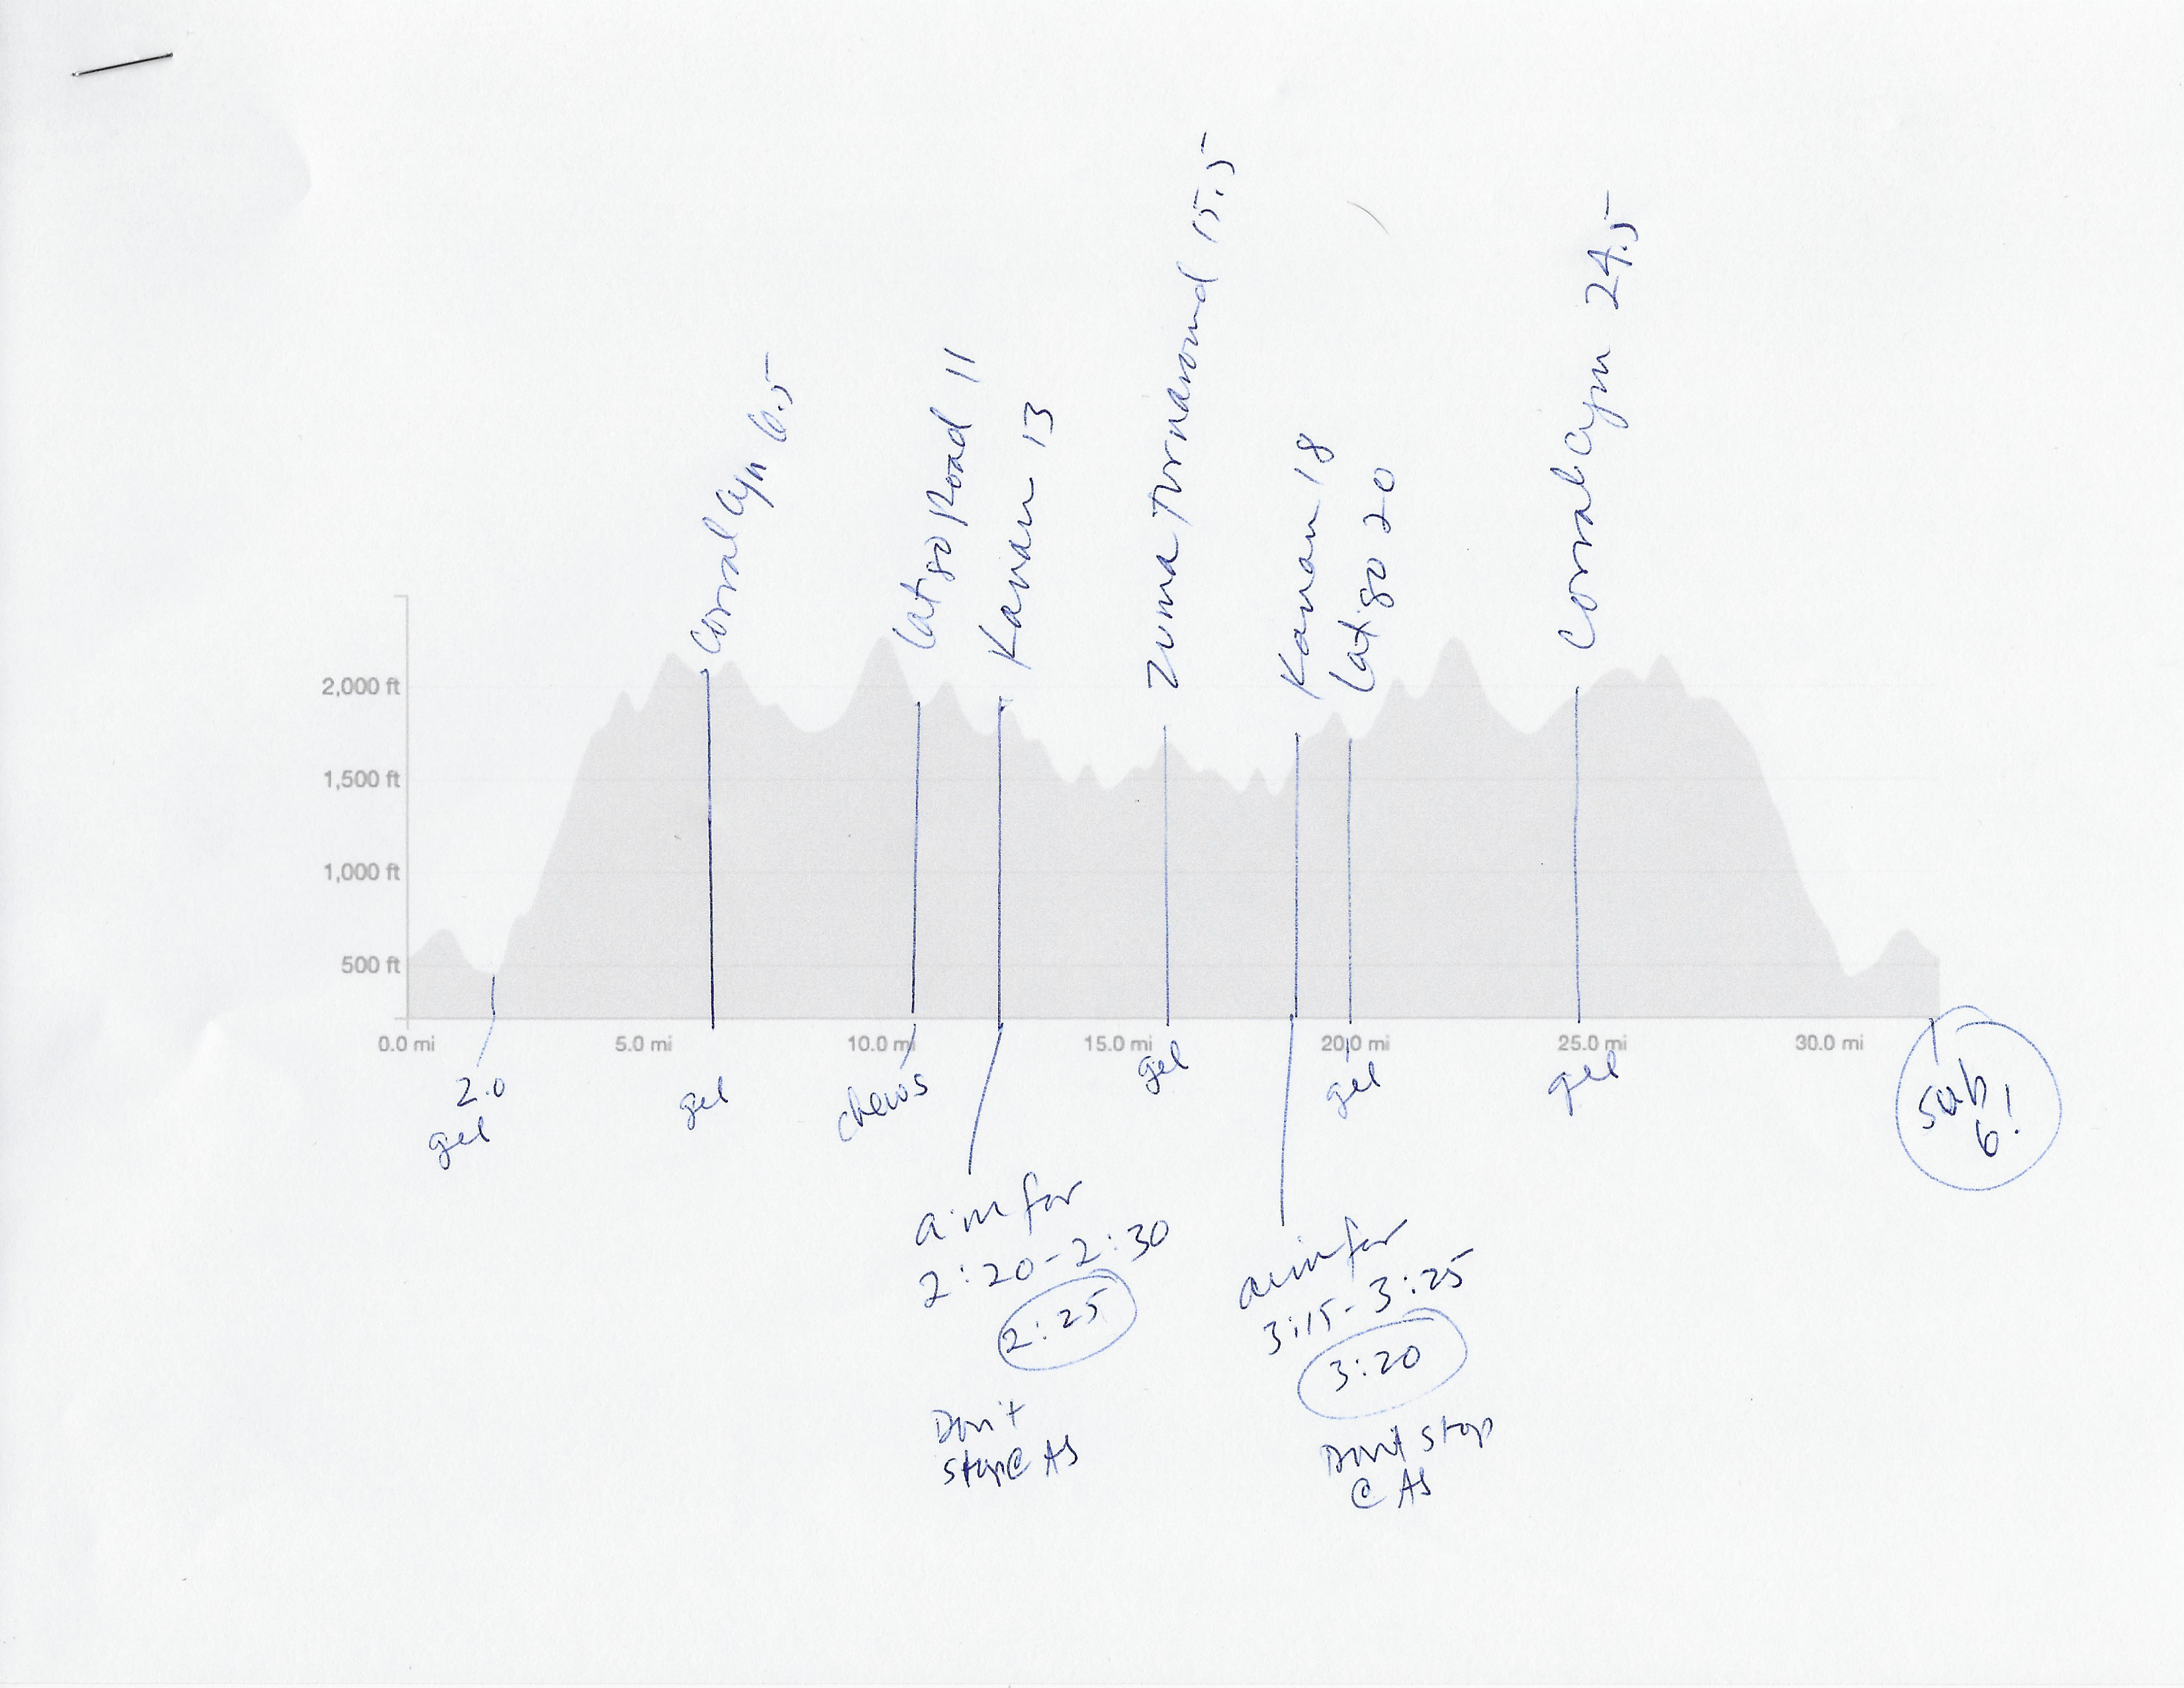 My quickie 50K race/pace plan (click to enlarge).